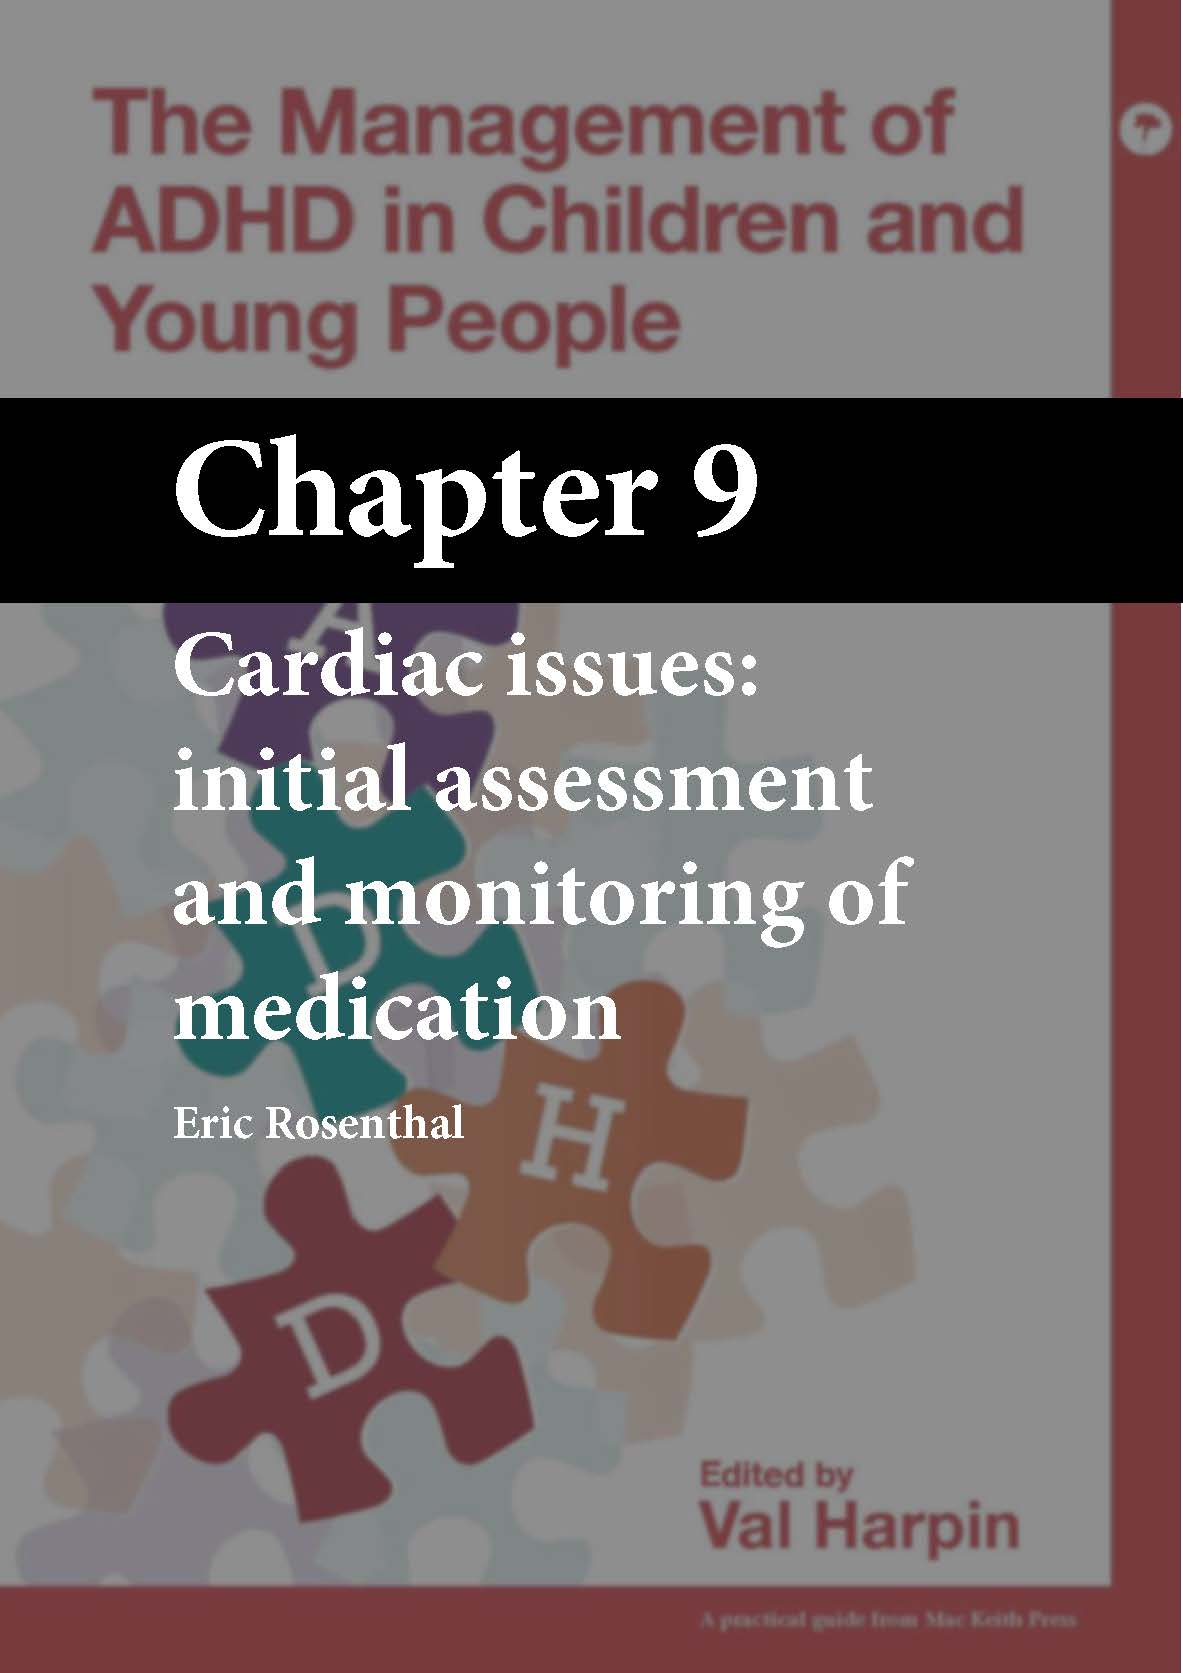 The Management of ADHD in Children and Young People, Harpin, Chapter 9 cover